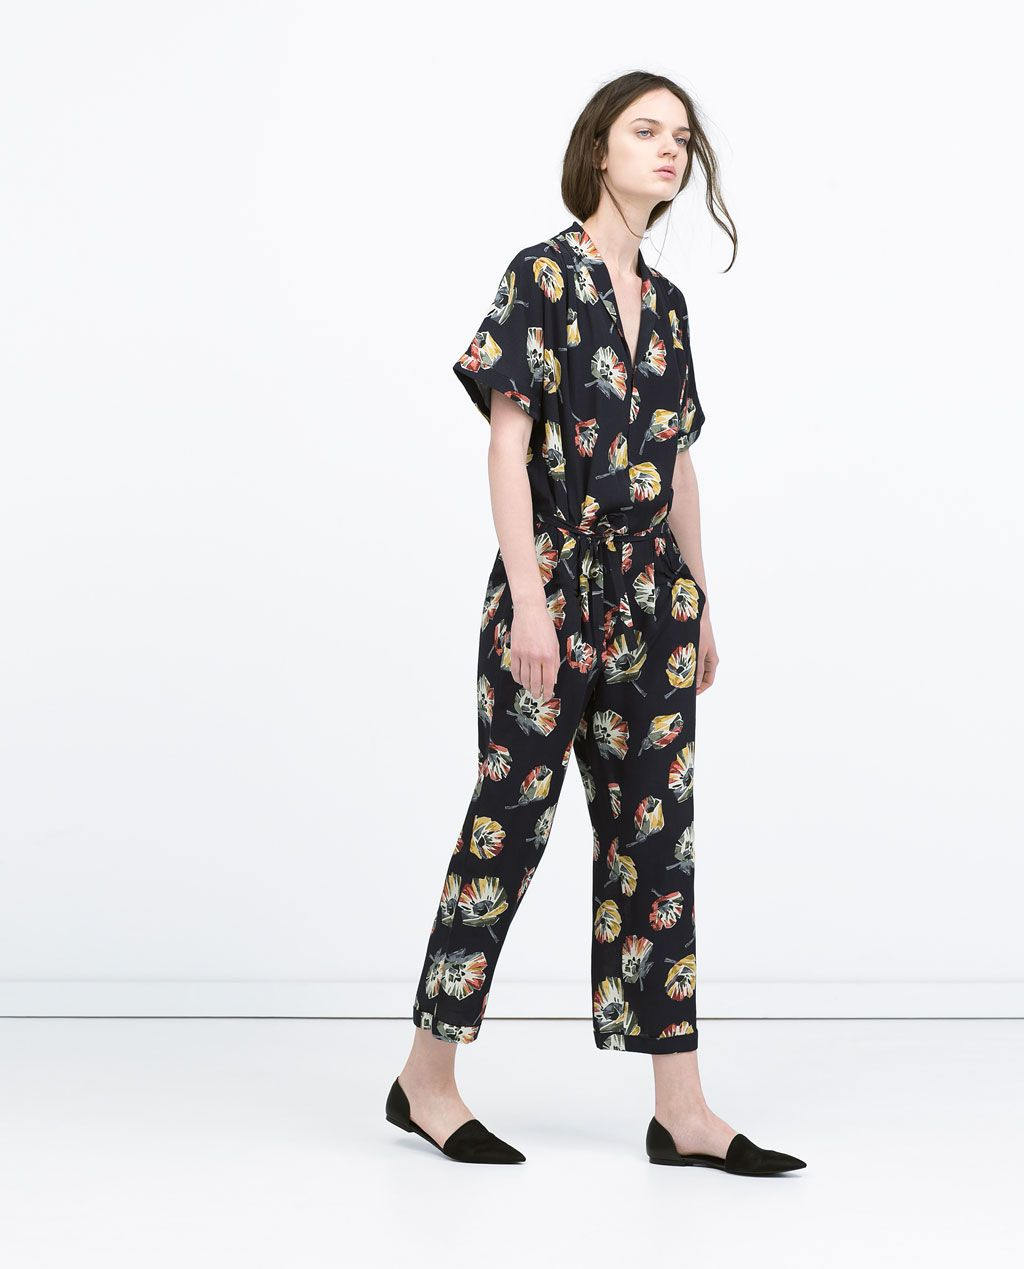 This Zara floral jumpsuit with collar is reminiscent of the beach ...